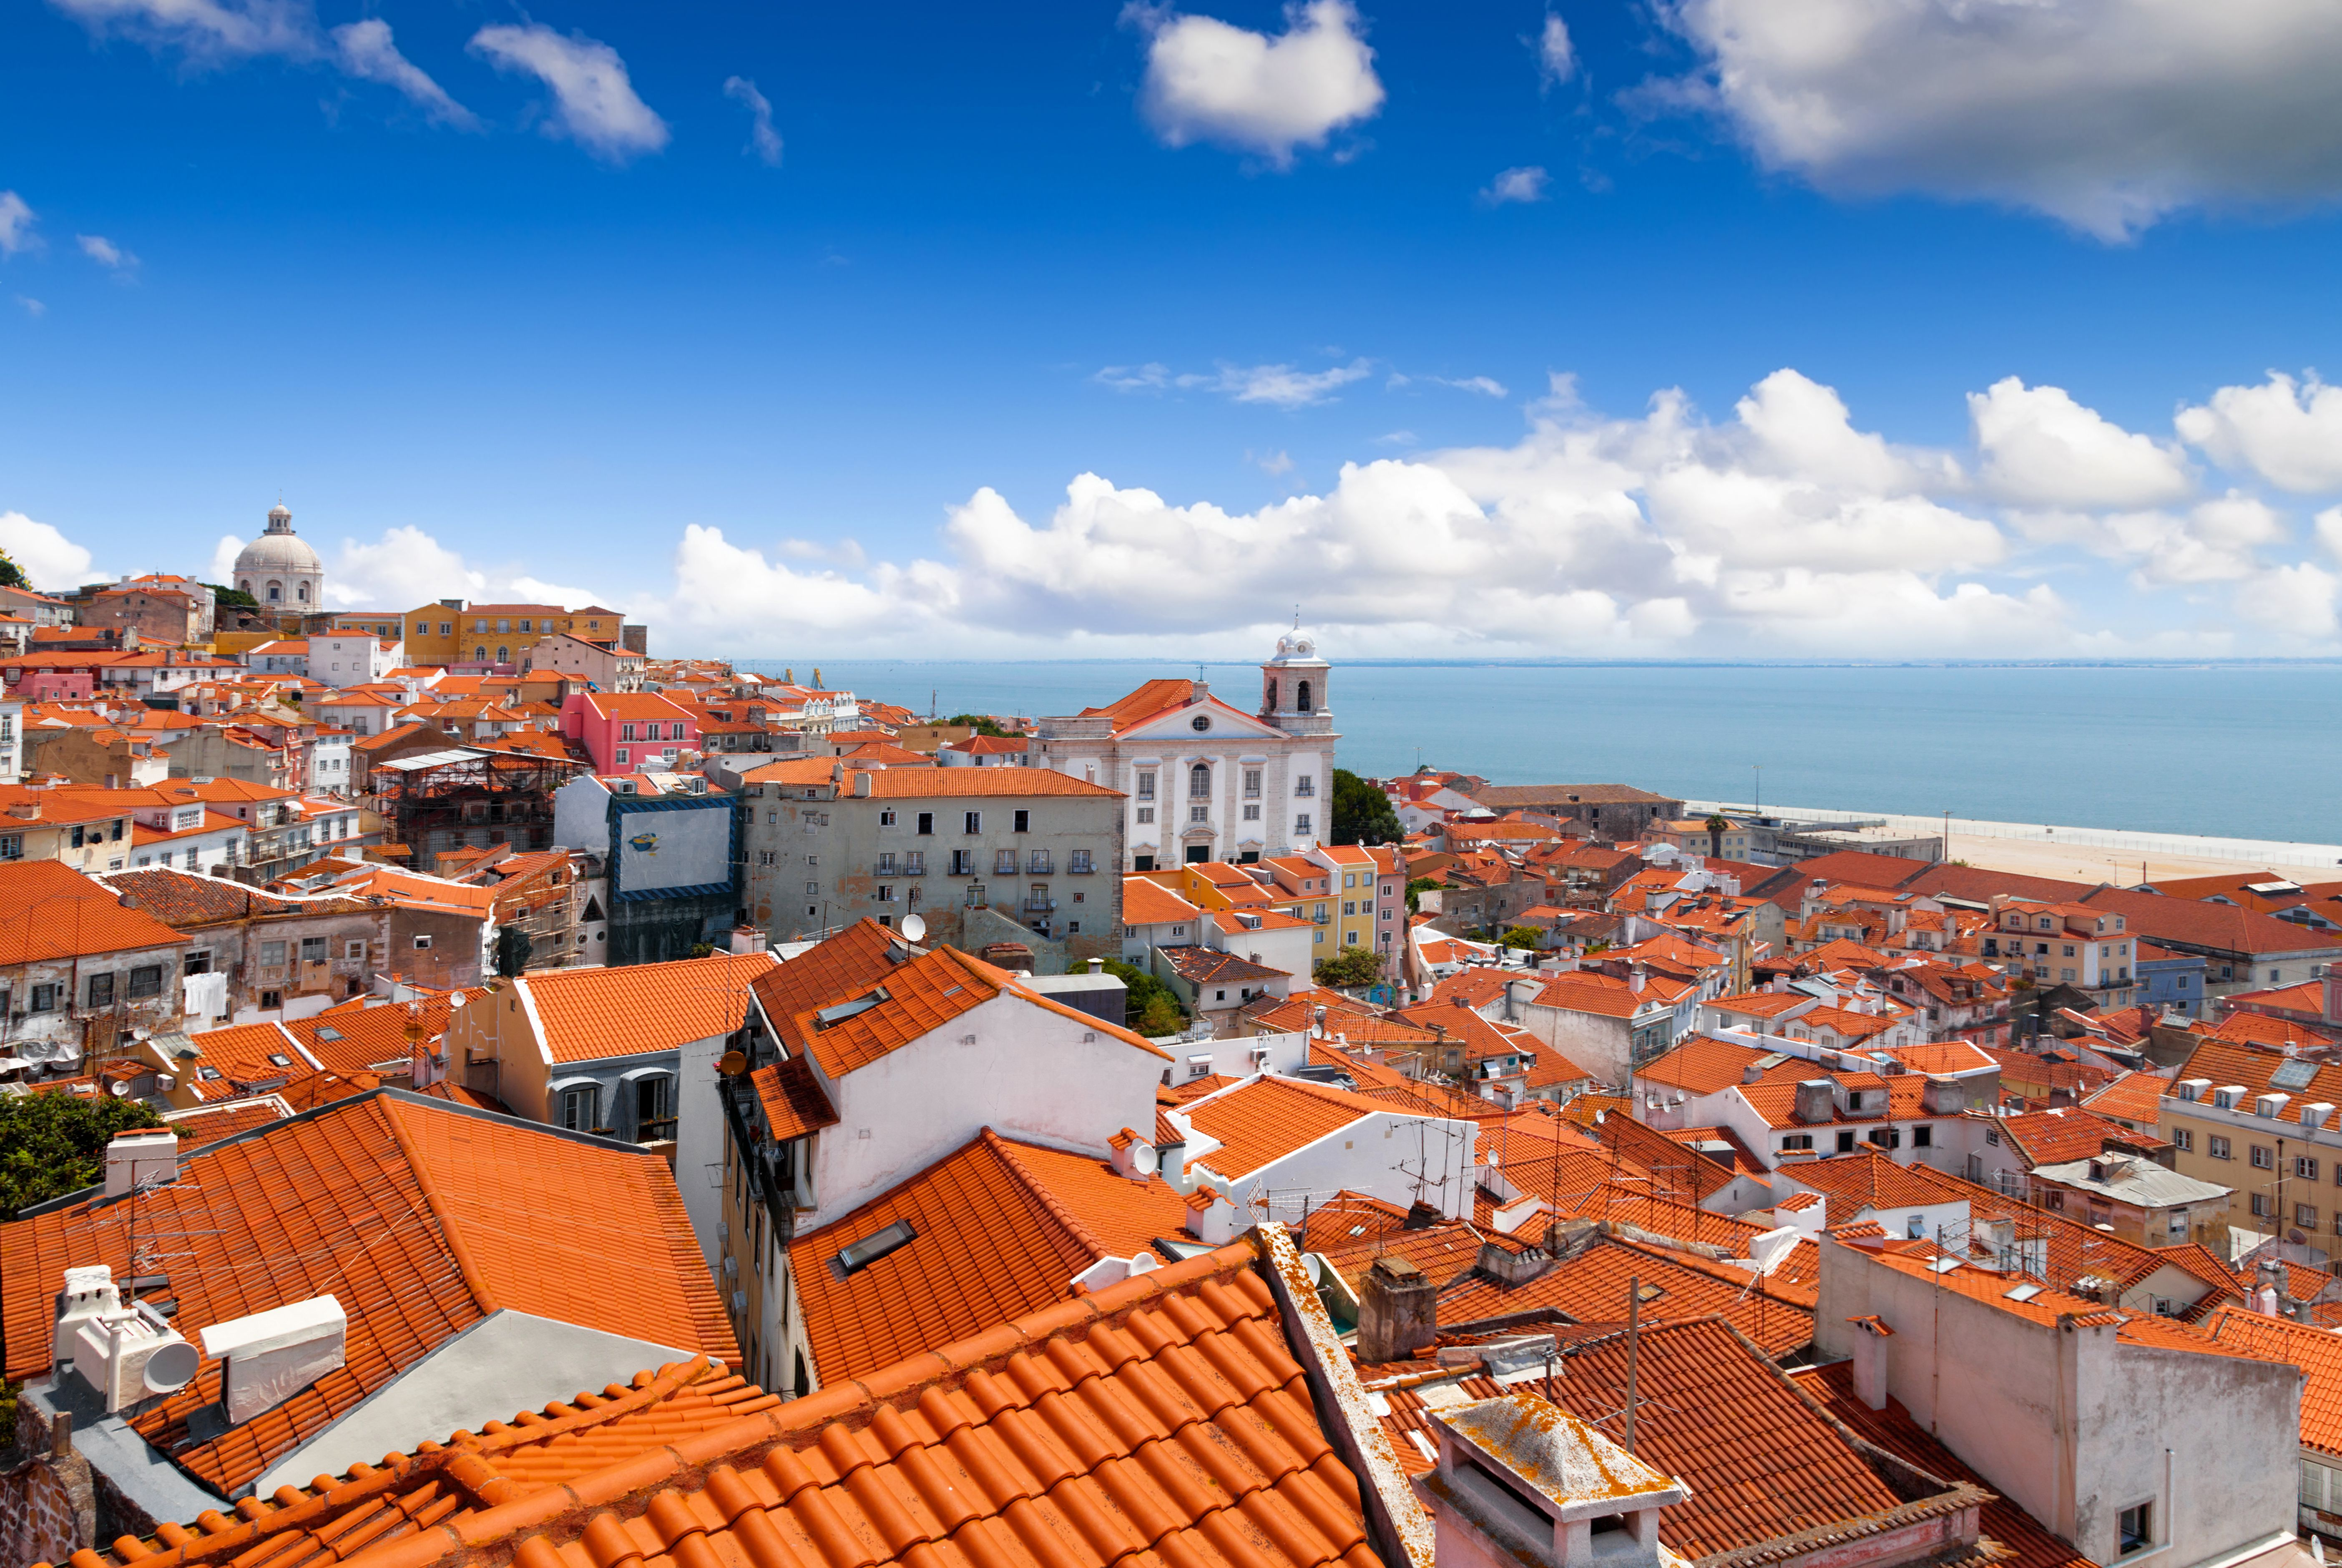 Do I Need Insurance To Travel To Portugal